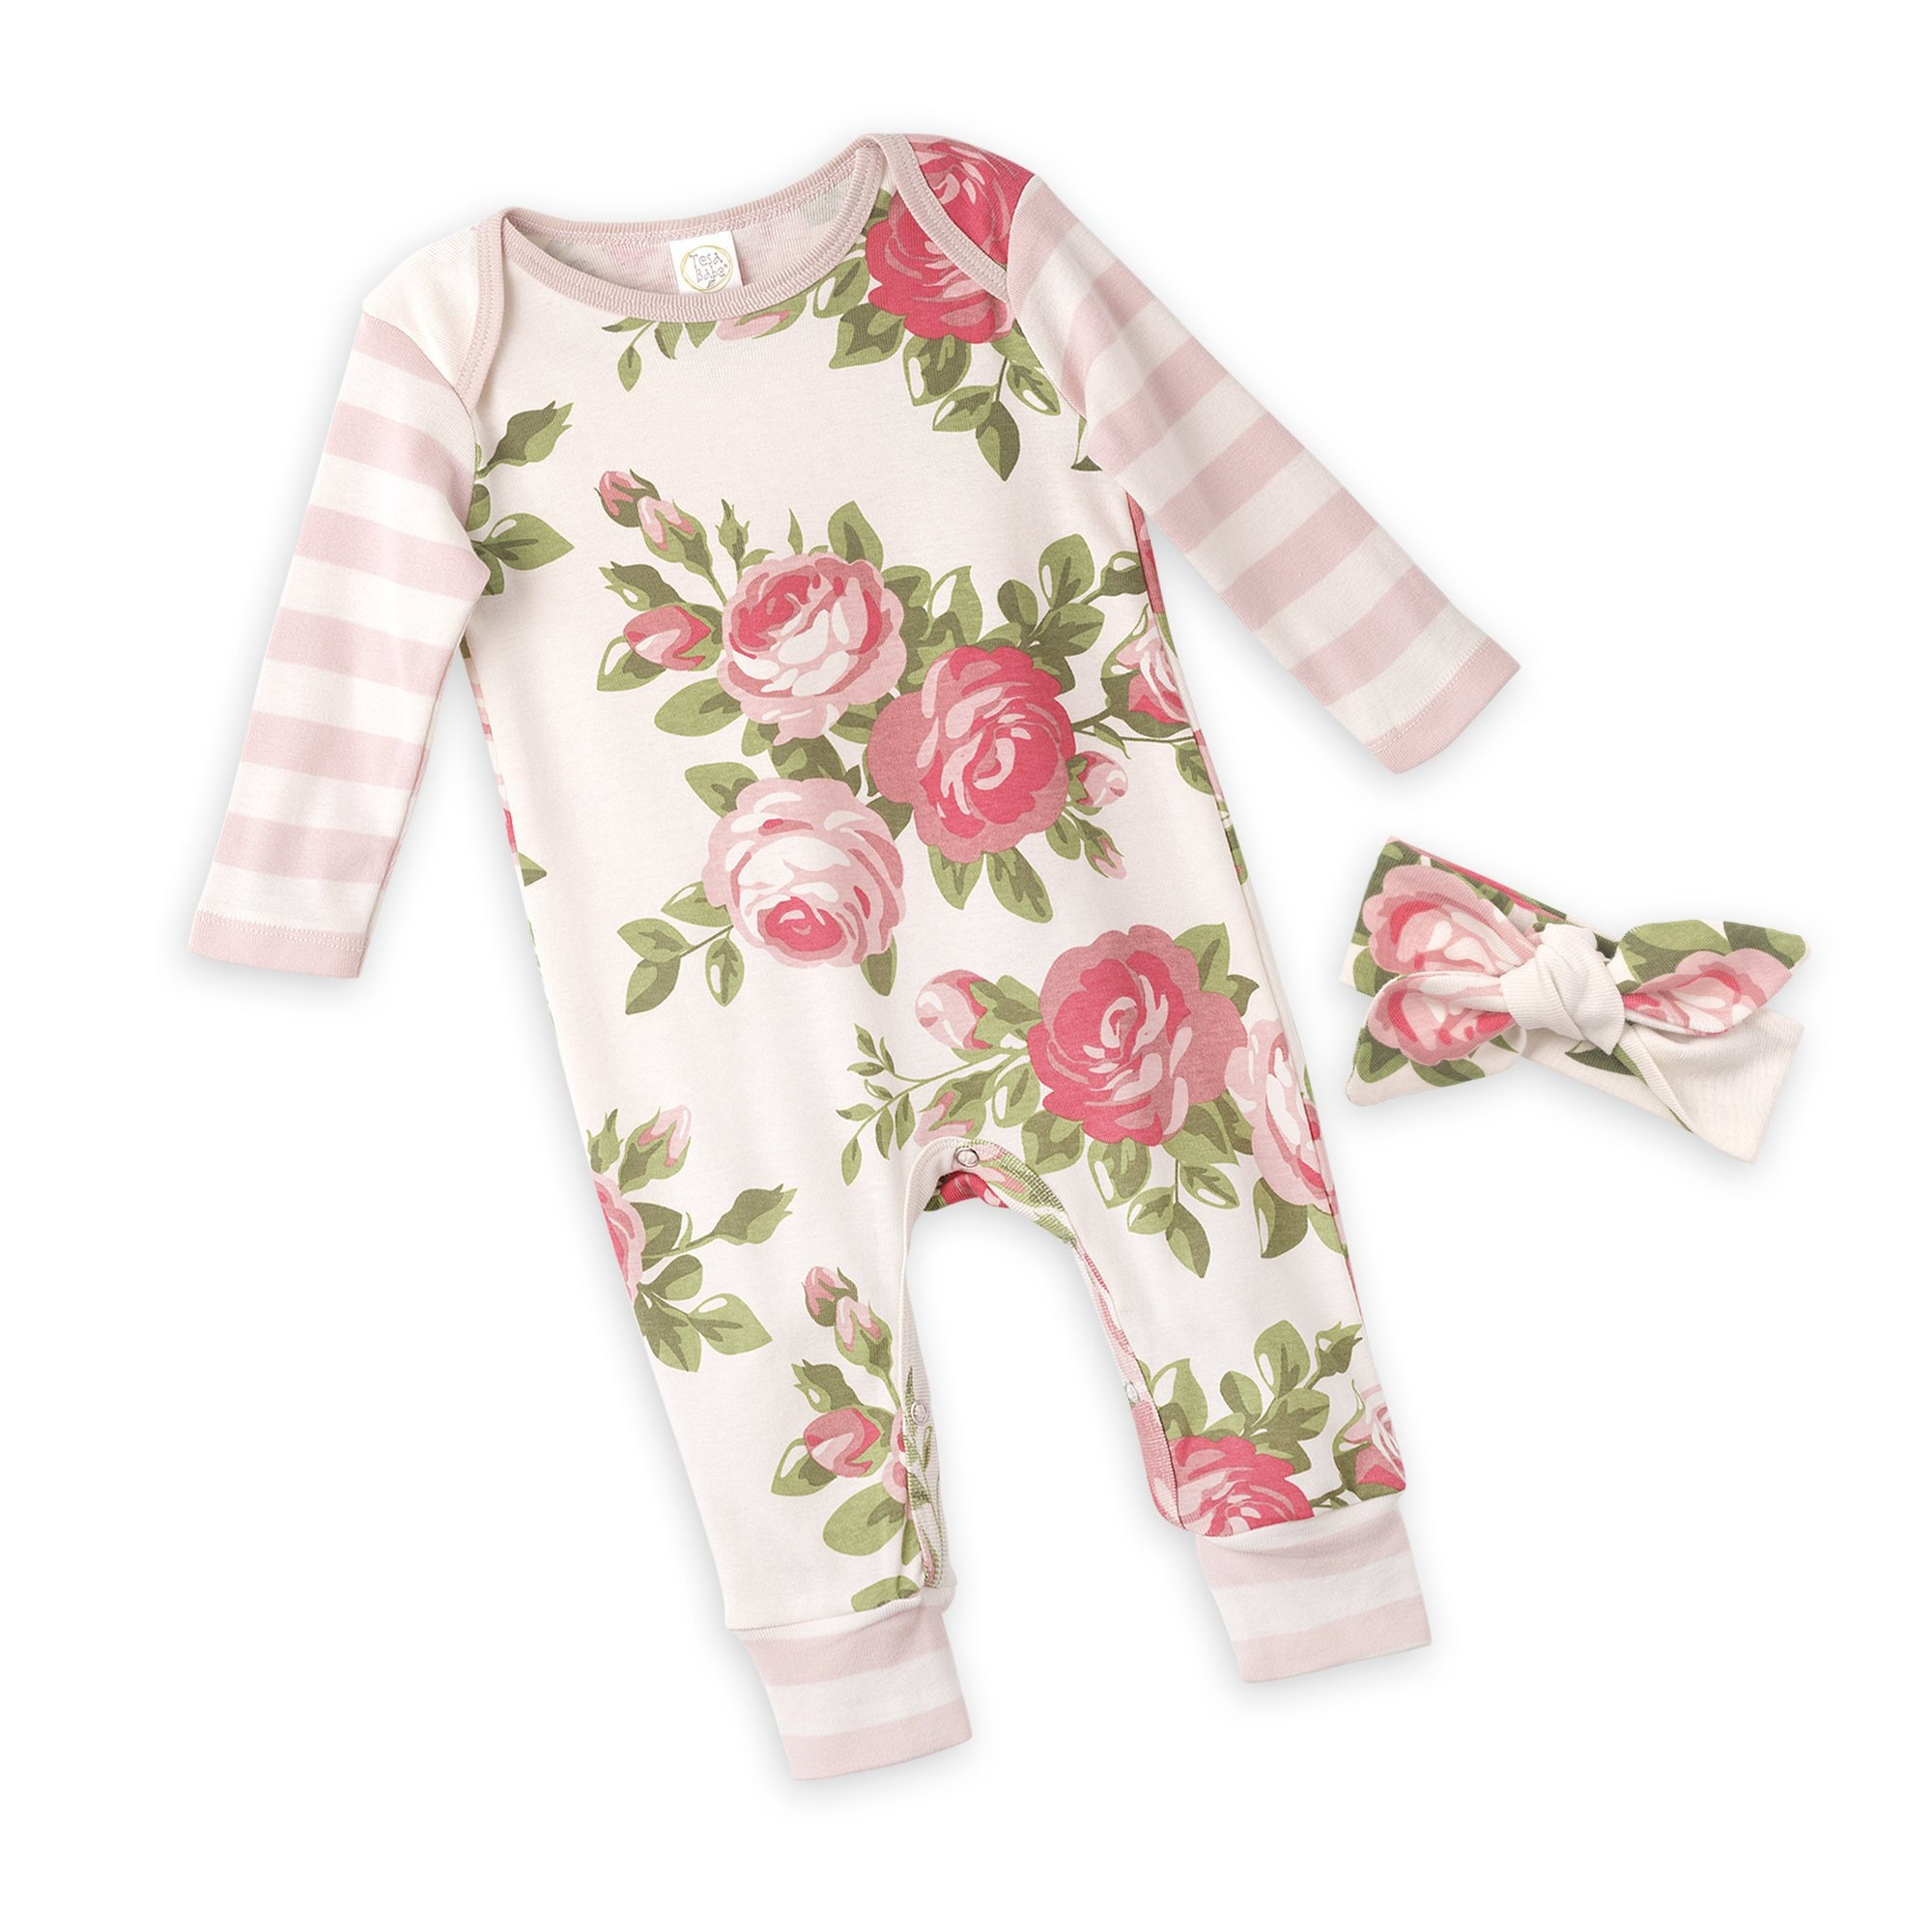 6c839342eb58 Newborn Baby Girl Coming Home Outfit